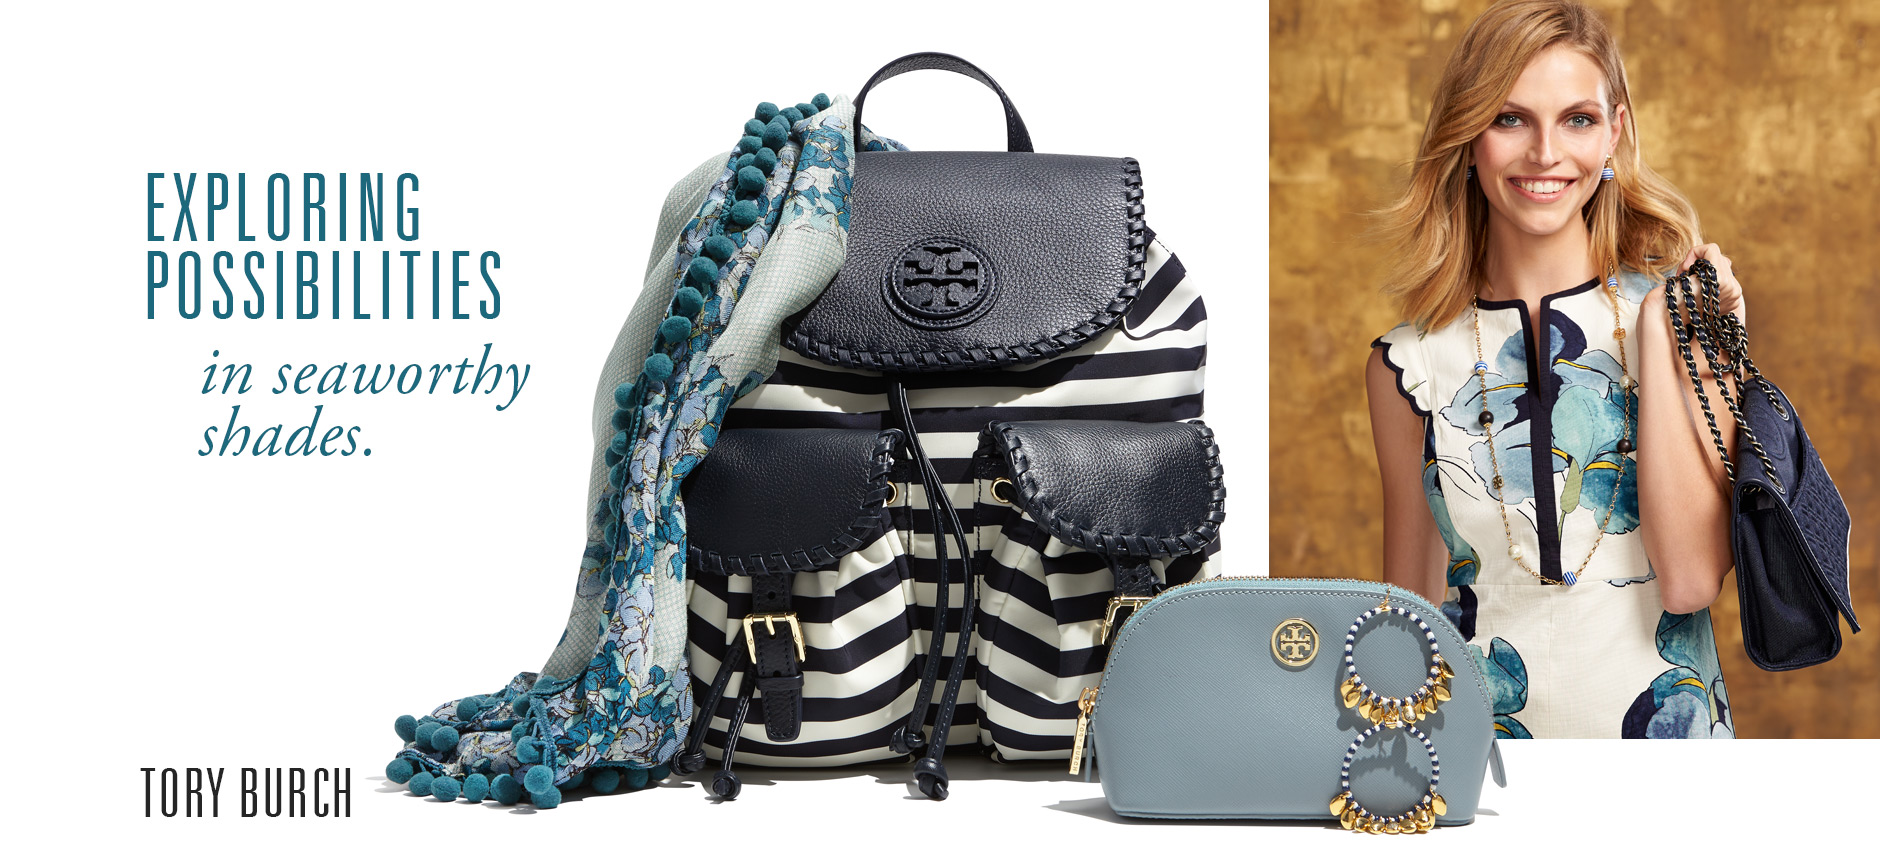 Tory Burch Gifts